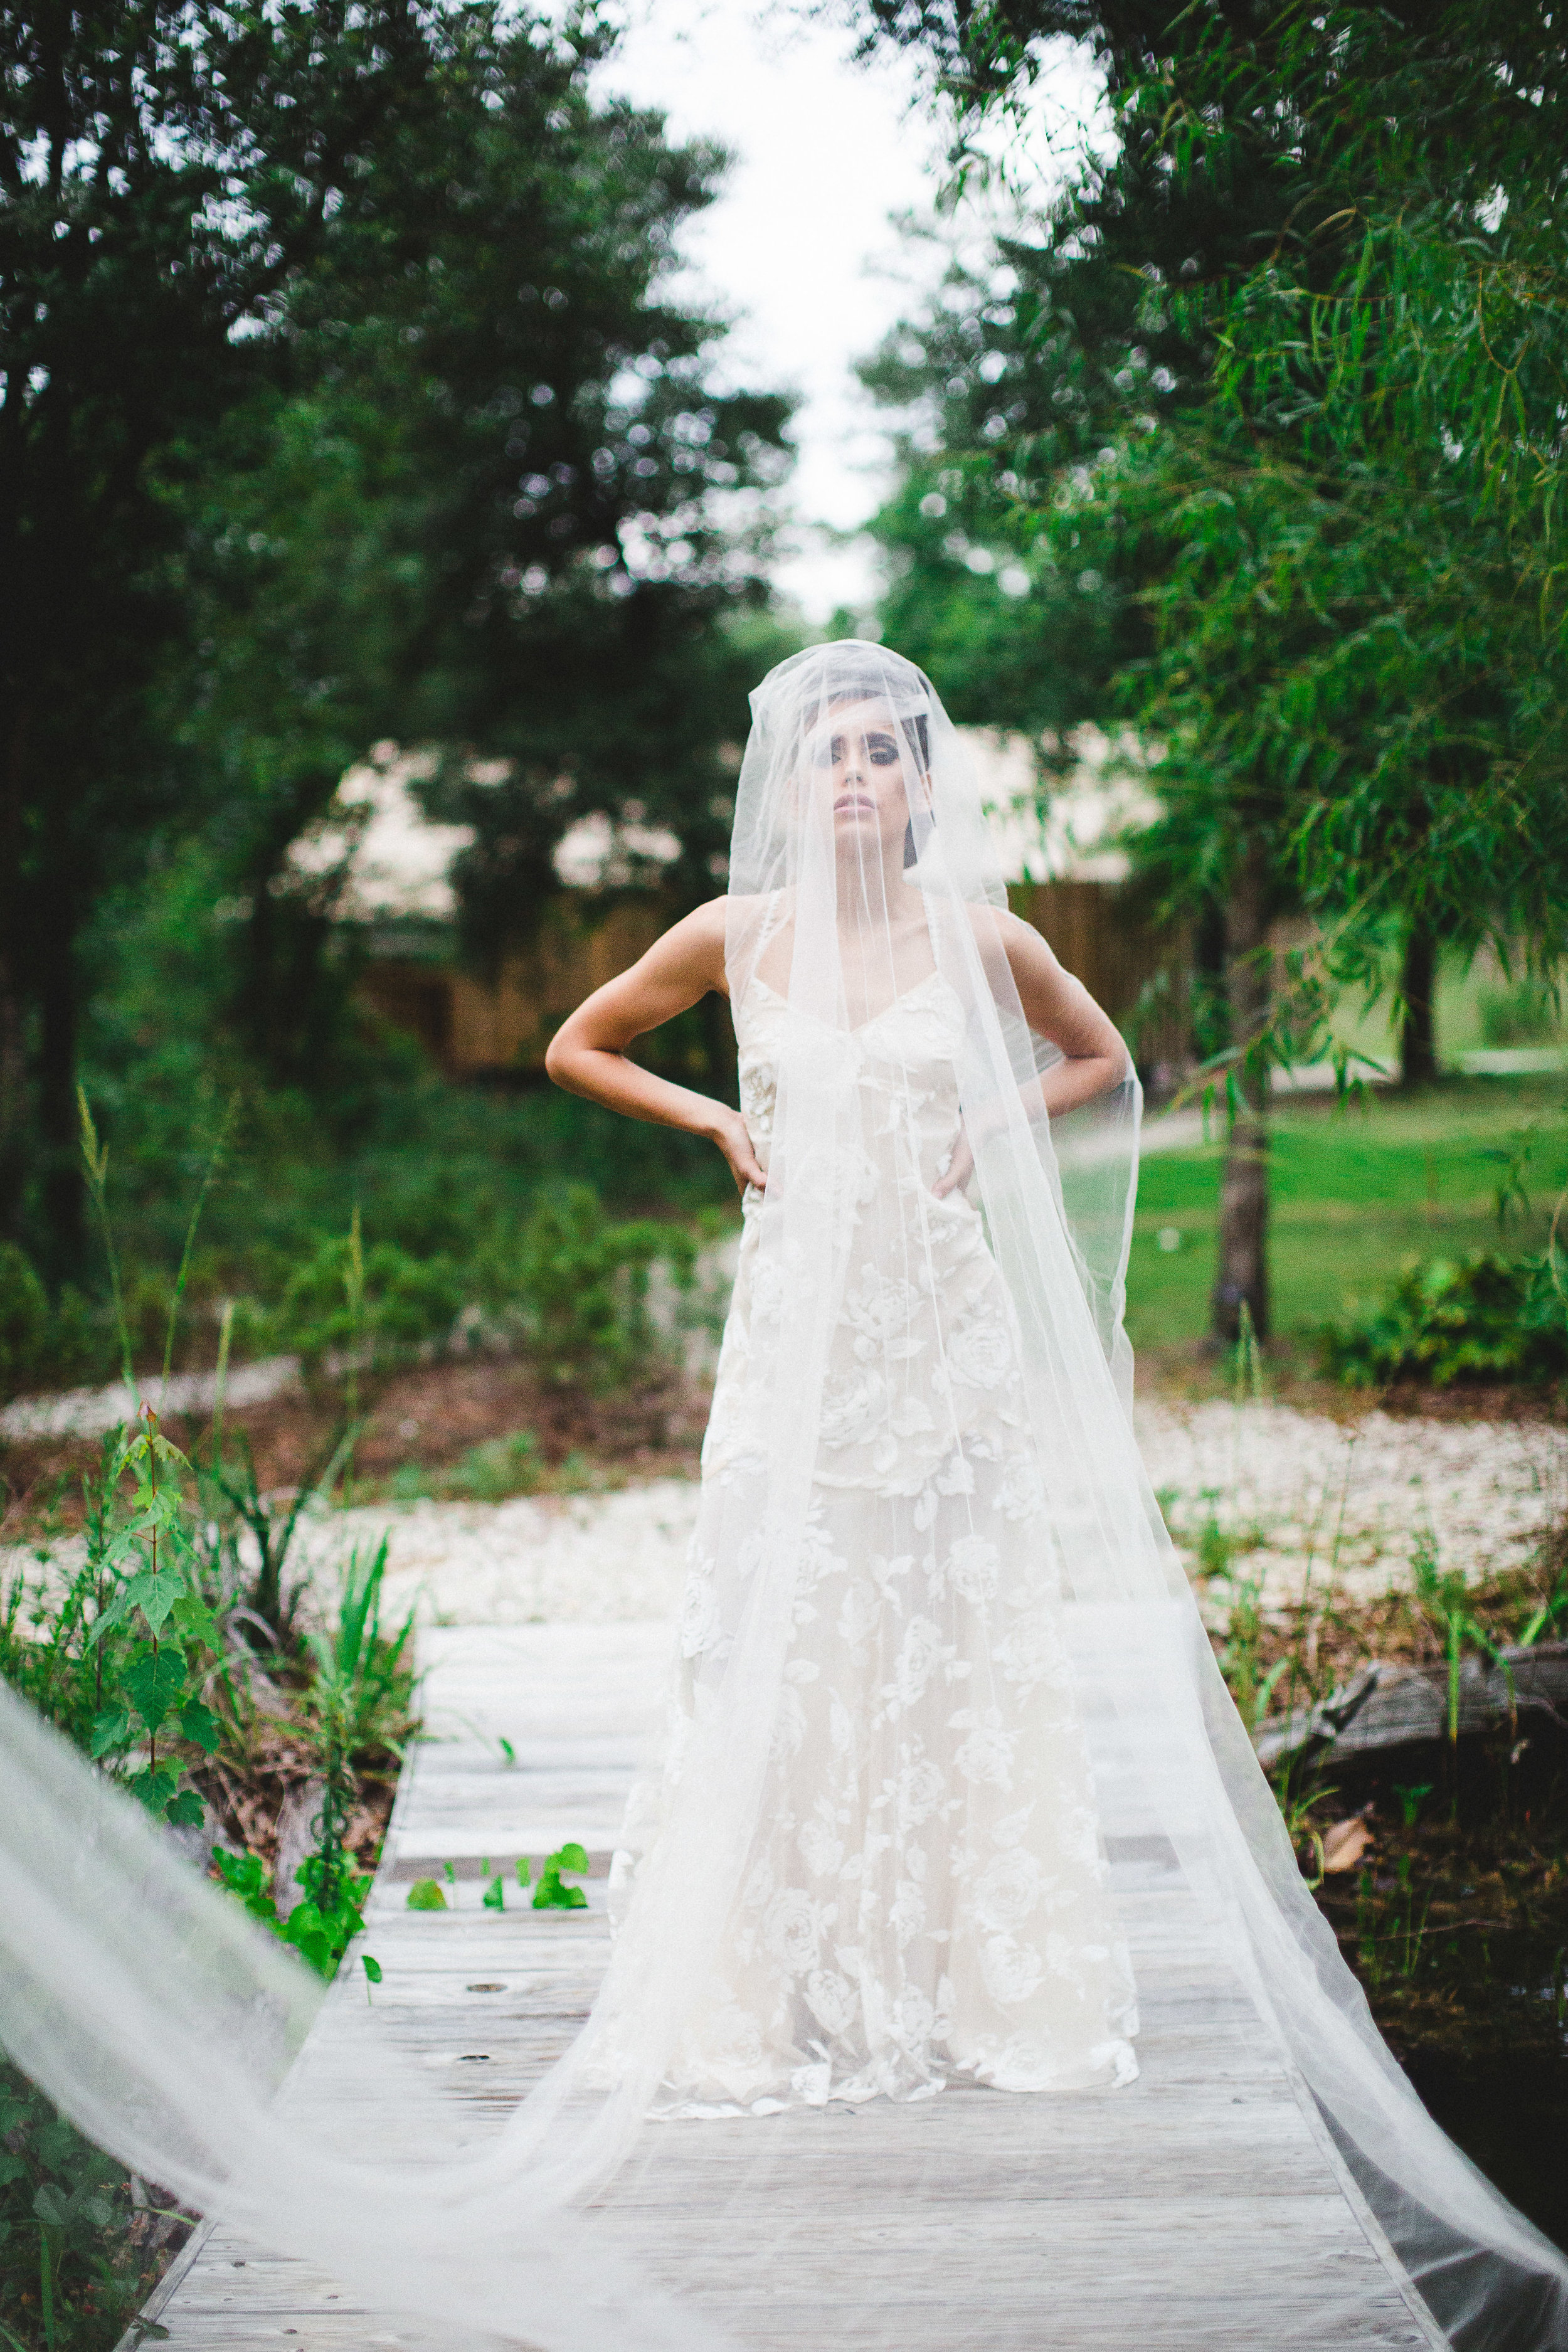 izzy-hudgins-photography-emily-burton-designs-ivory-and-beau-bridal-boutique-daughters-of-simone-sonje-jenny-yoo-bridesmaids-glamping-wedding-boho-wedding-outdoor-wedding-coldwater-gardens-wedding-savannah-bridal-boutique-savannah-wedding-planner-27.jpg